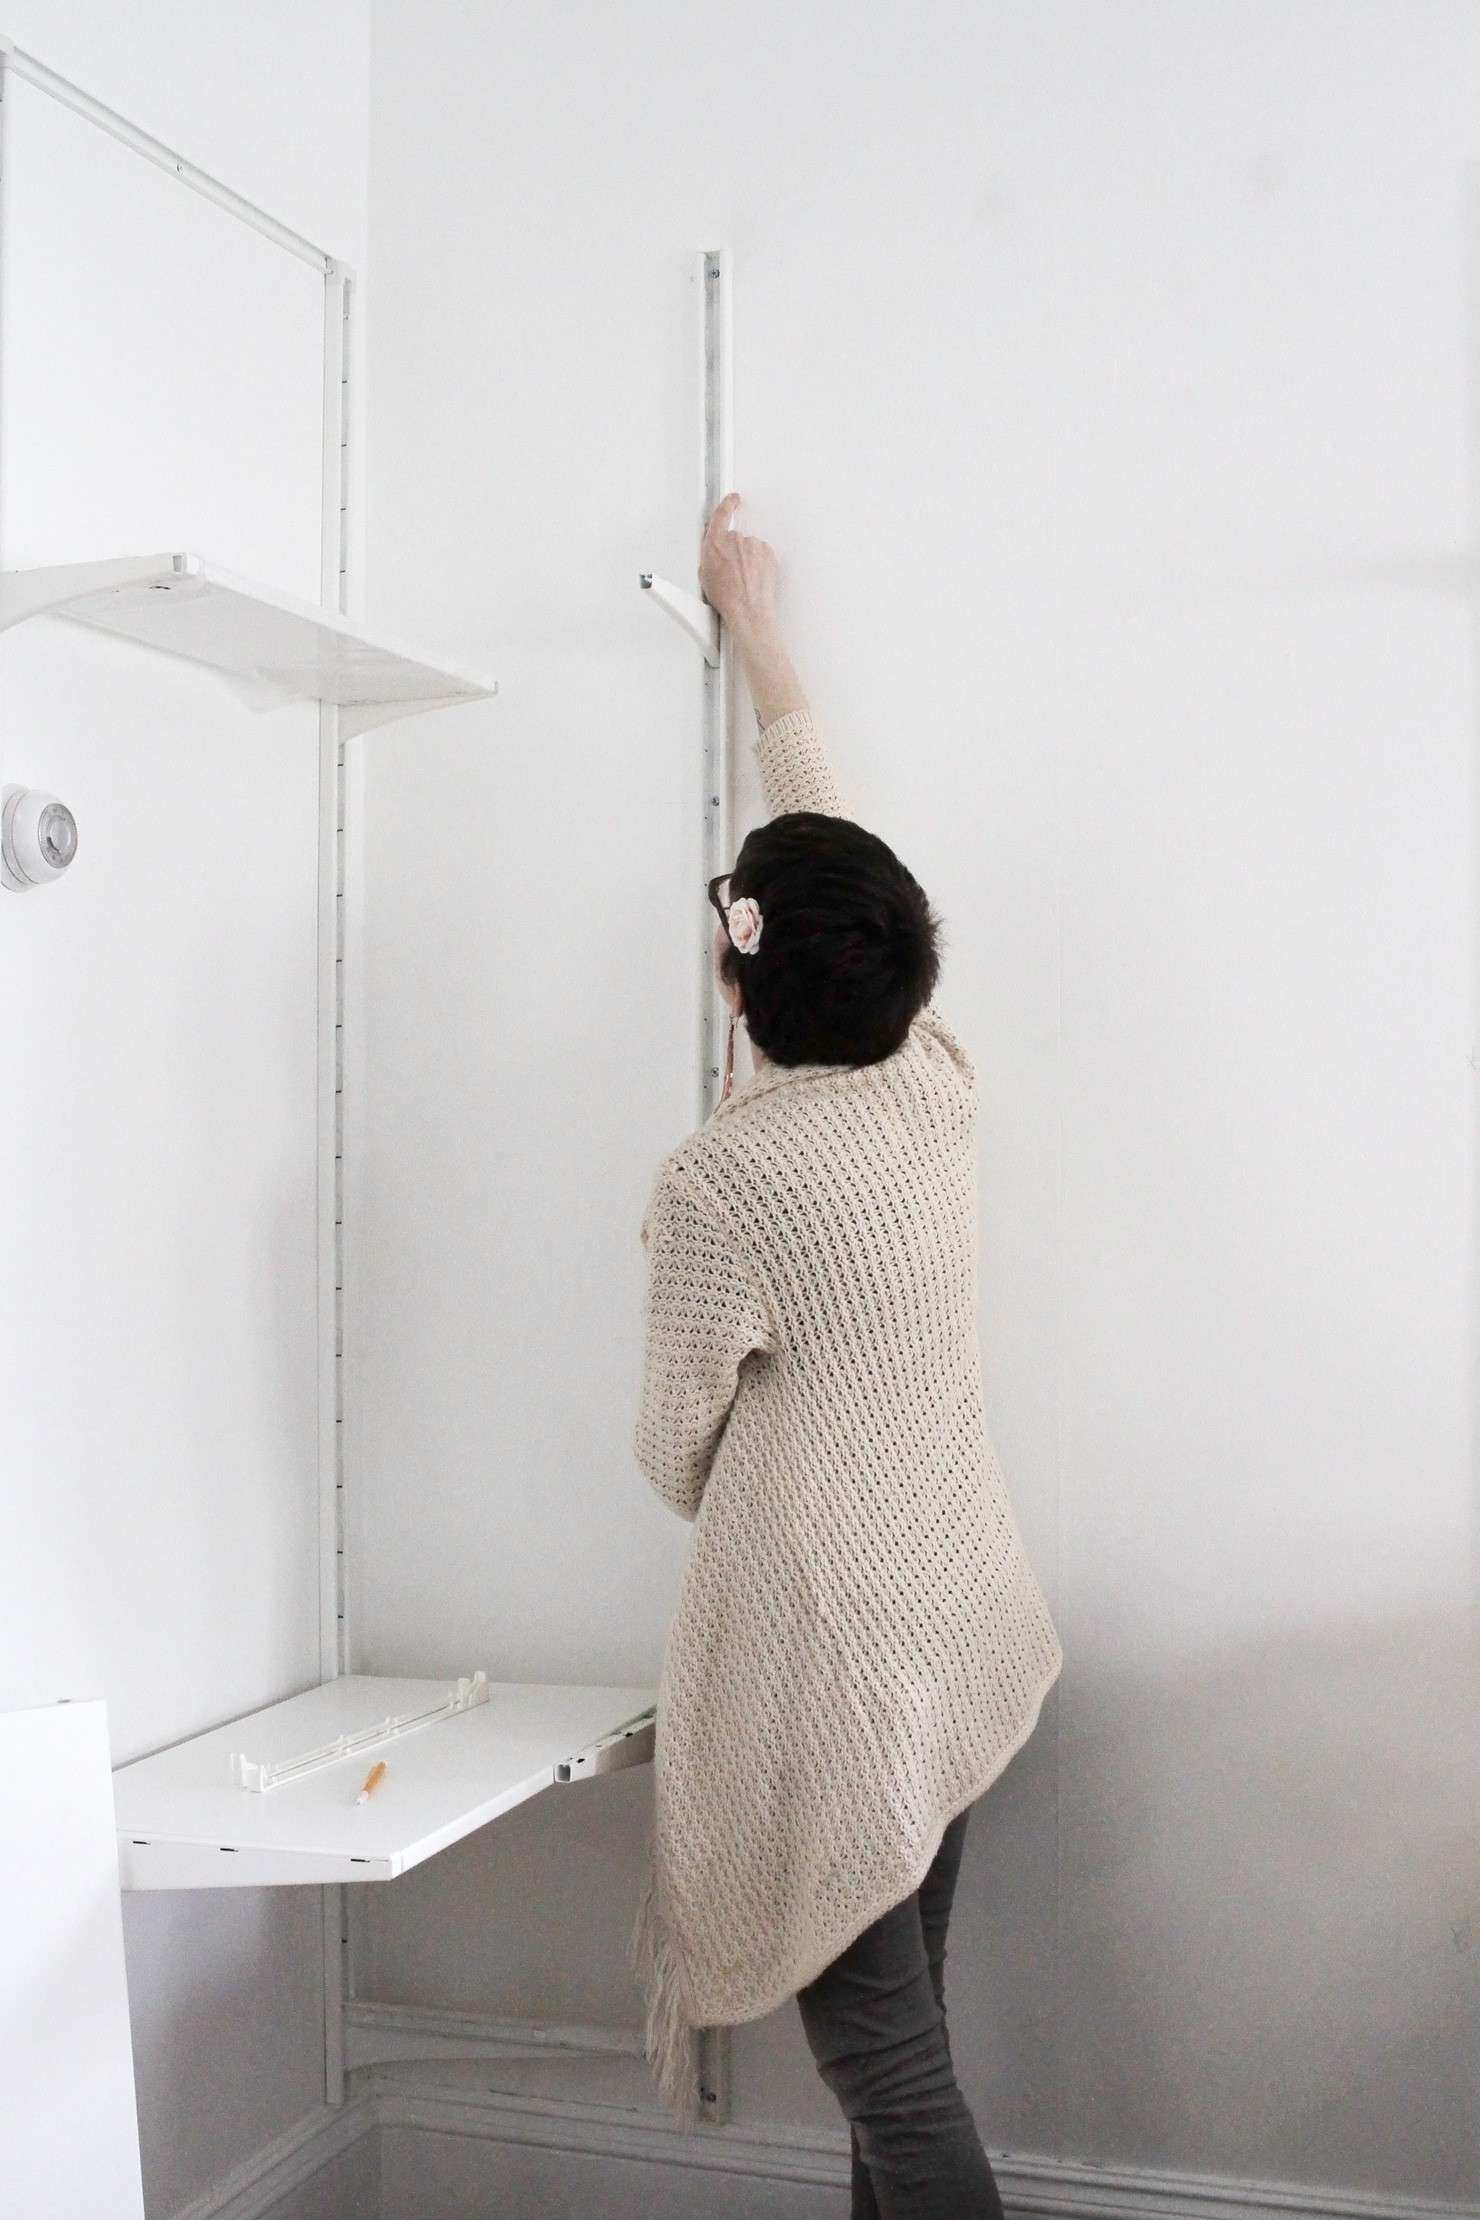 To Hang Heavy Shelves on Horsehair Plaster Walls Idle Hands Awake